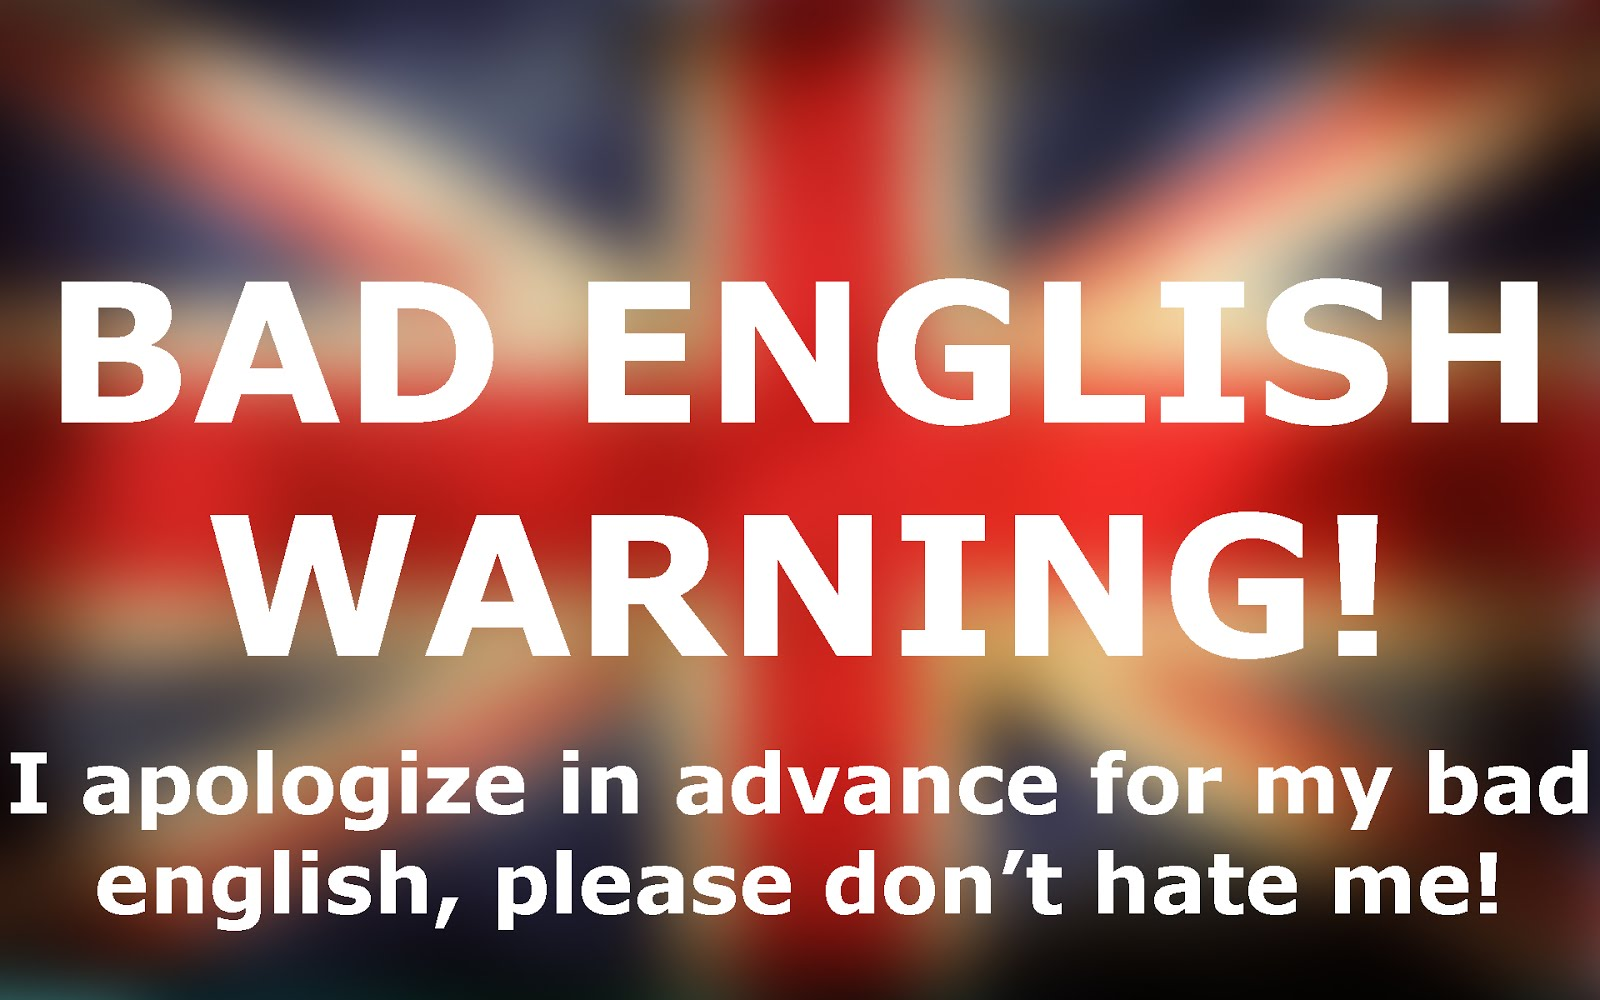 BAD ENGLISH WARNING